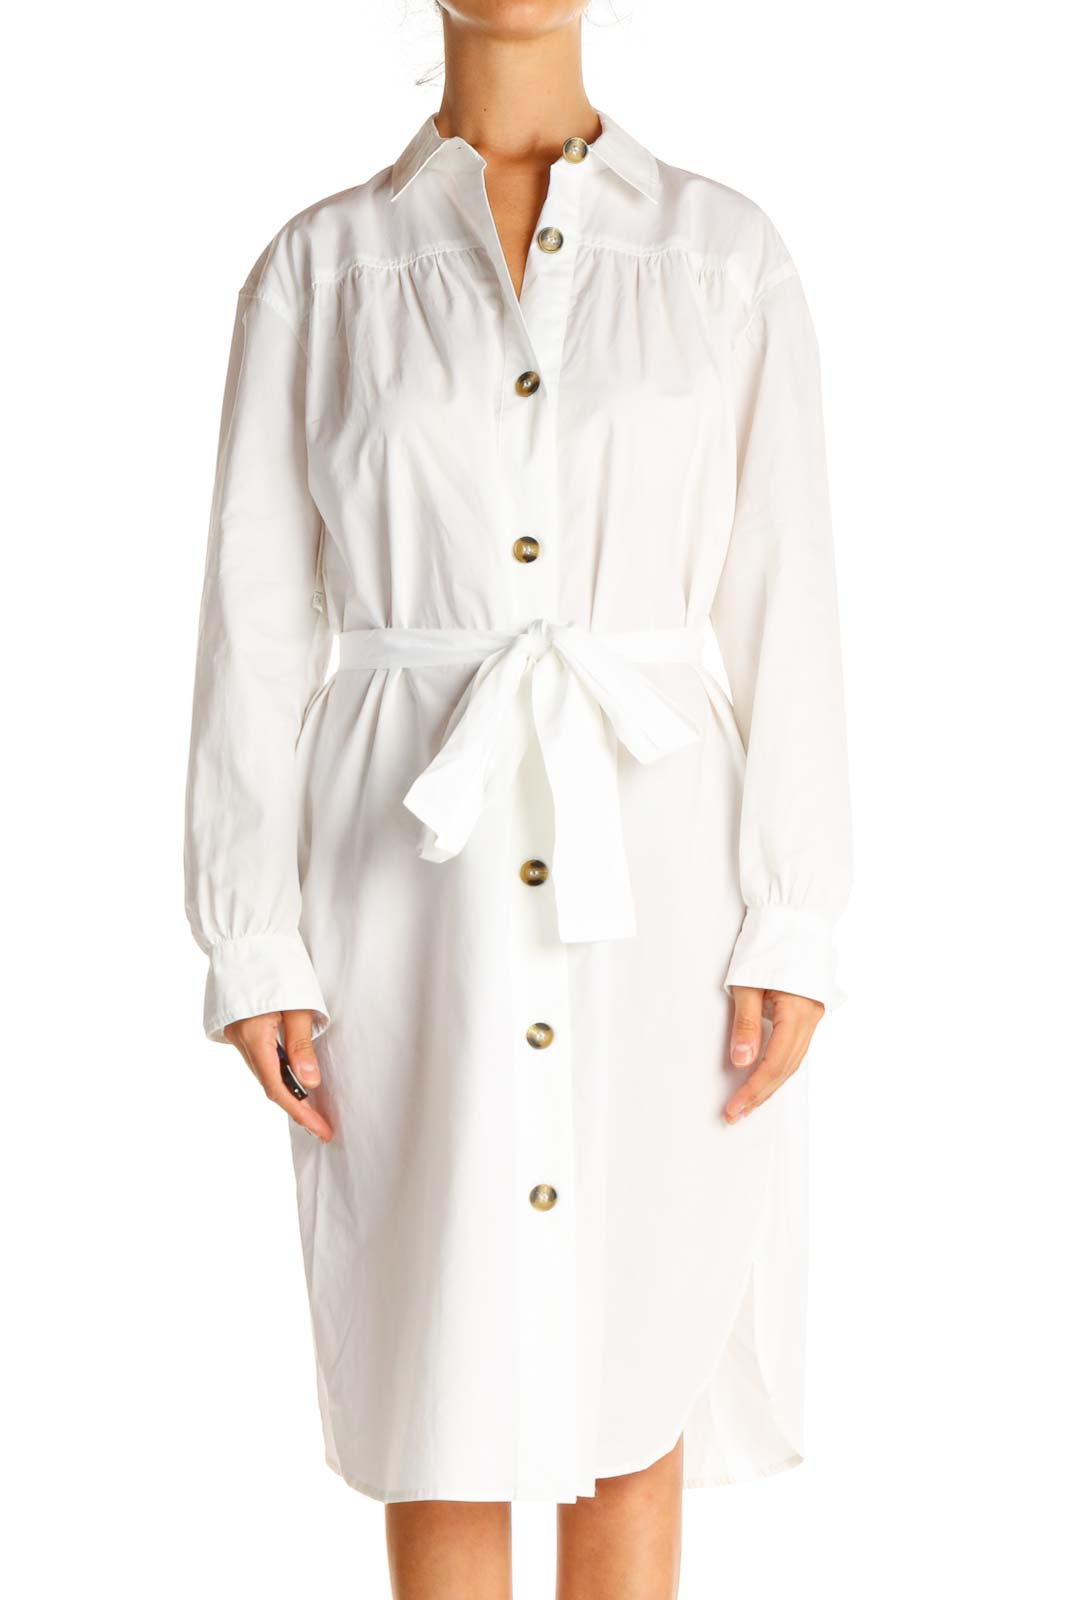 White Solid Work Sheath Dress Front